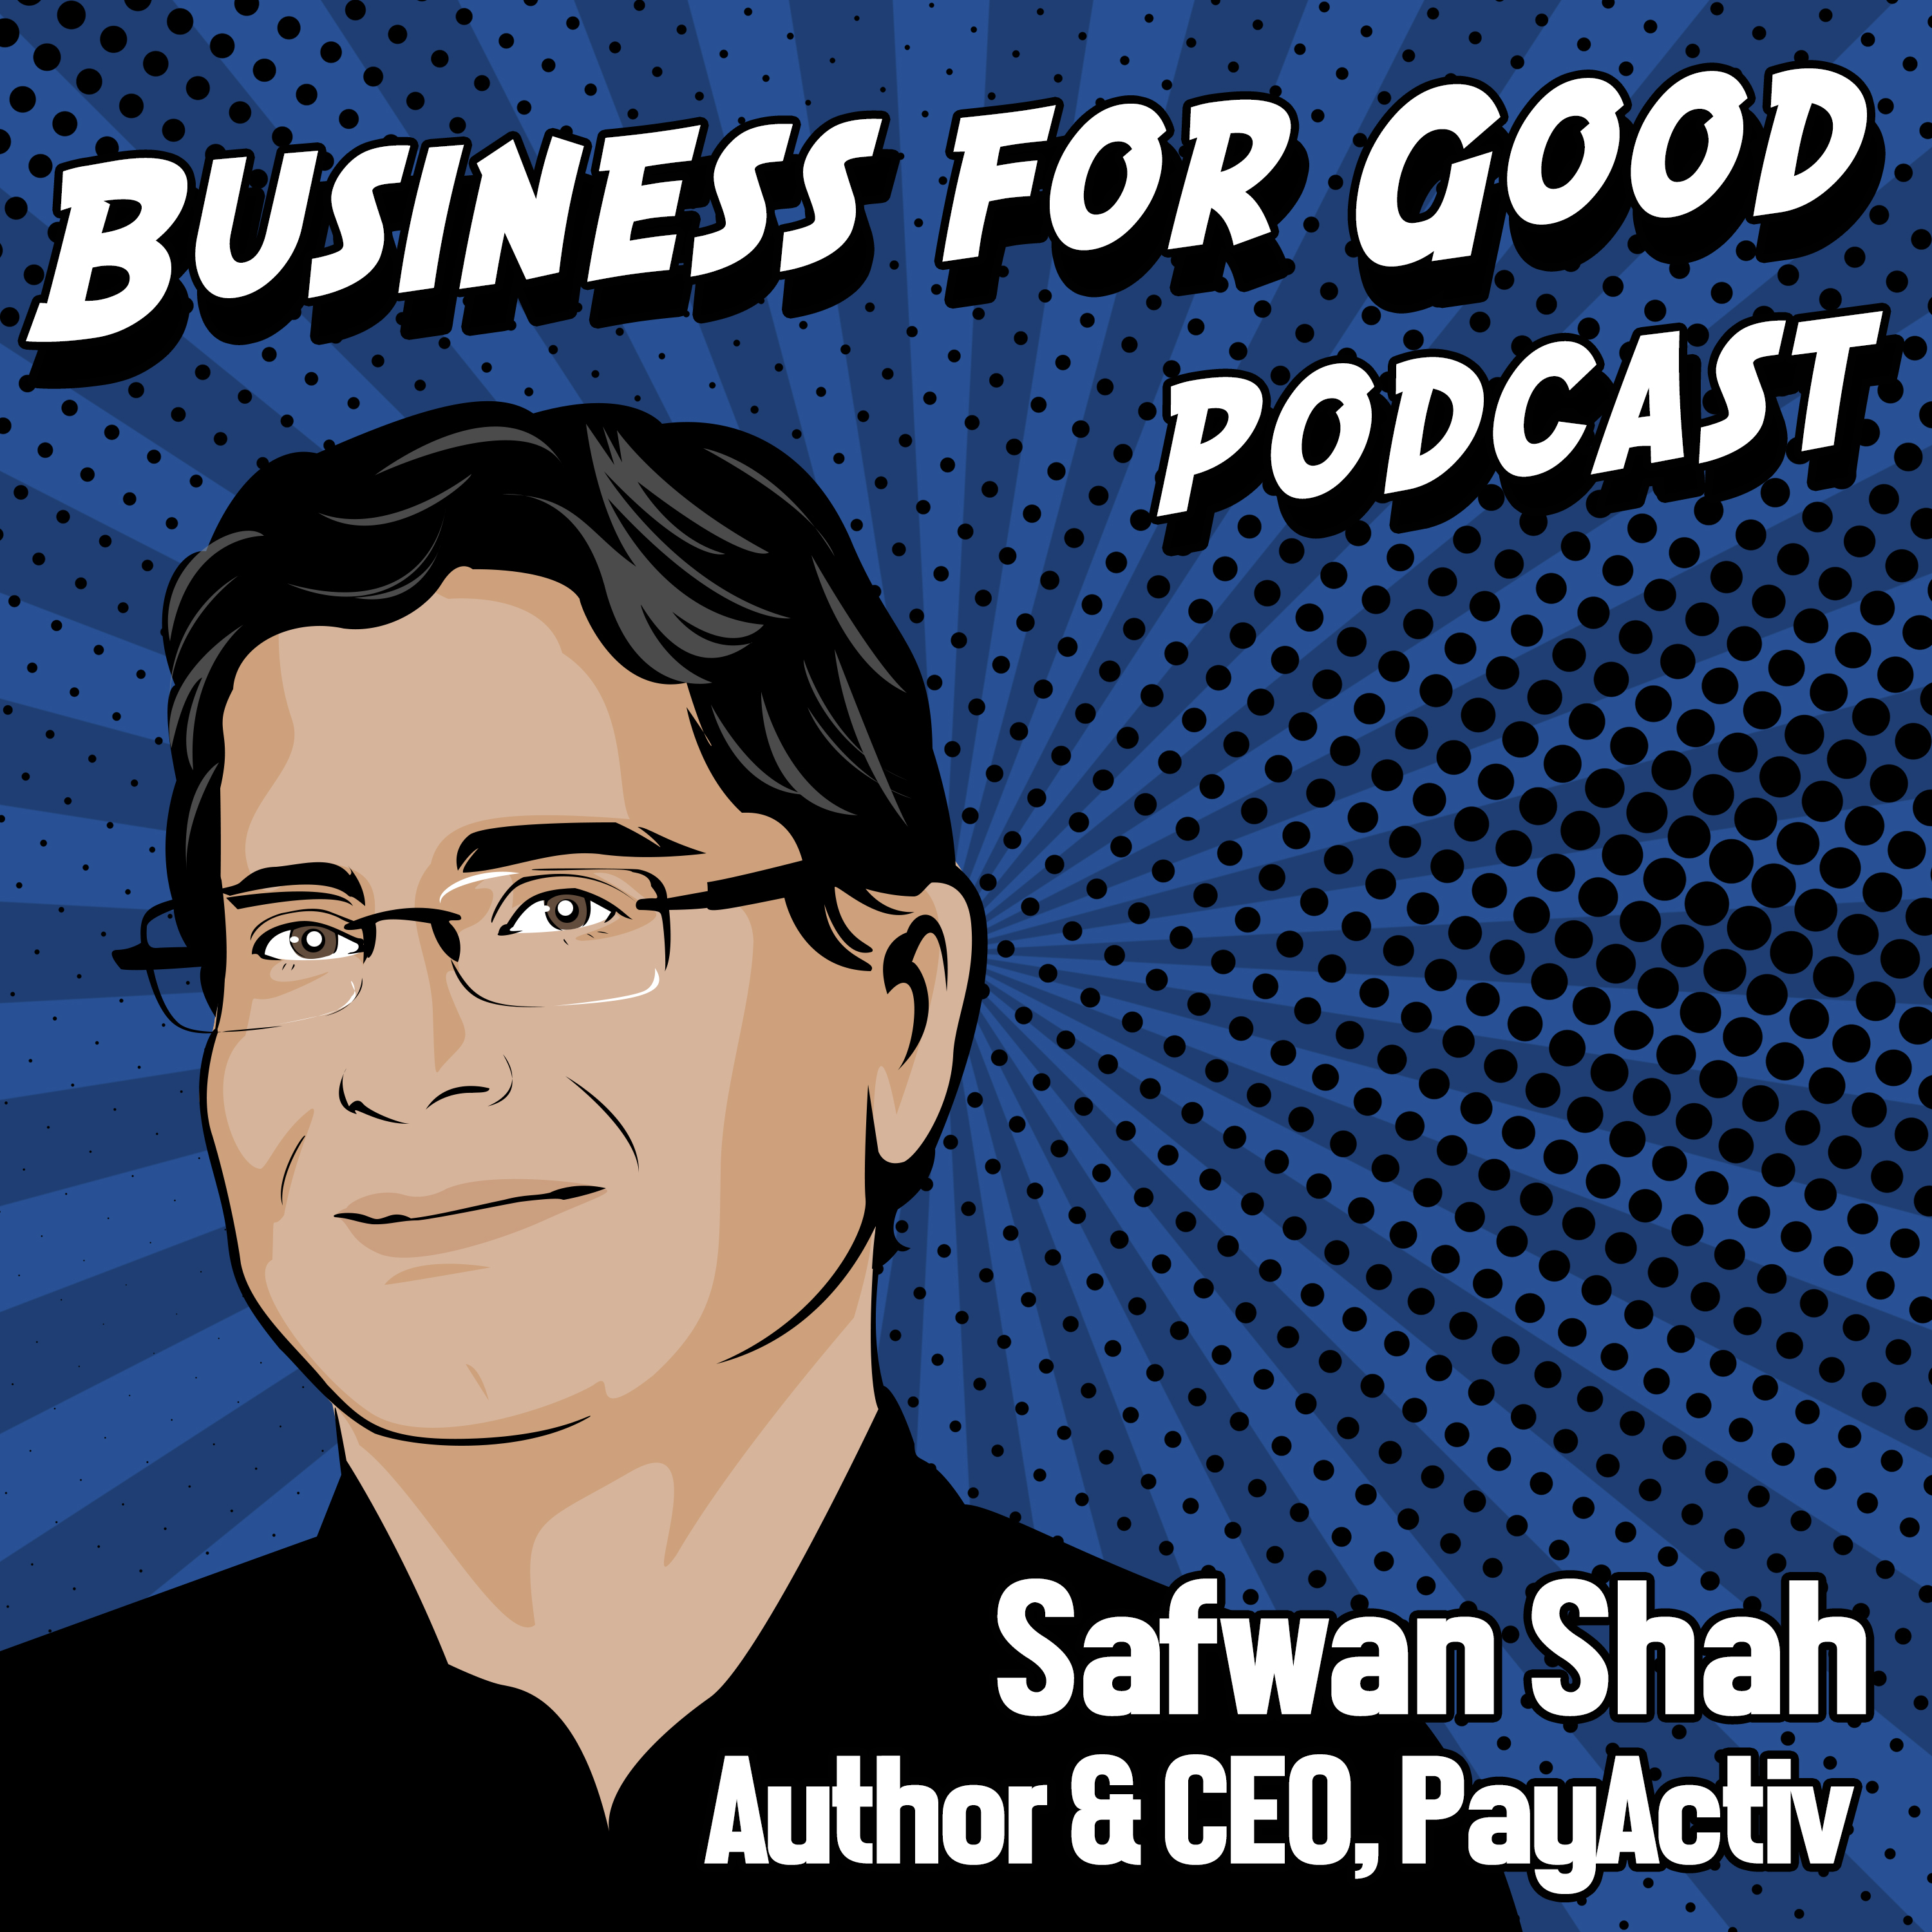 The Business For Good Podcast